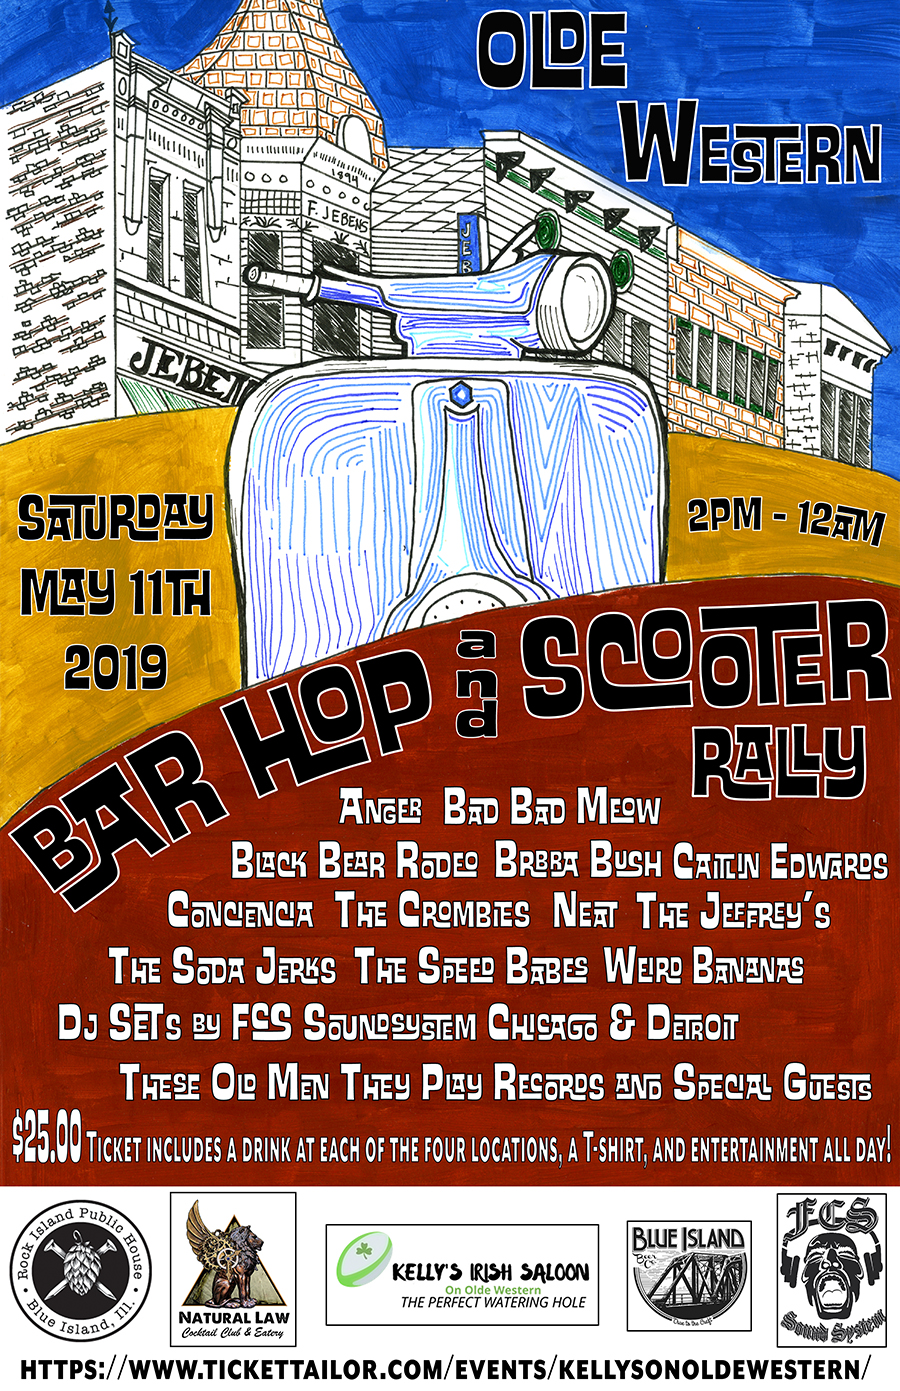 Saturday May 11th 2019 Olde Western Bar Hop and Scooter Rally  Kelly's Saloon - on Olde Western   Rock Island Public House   Natural Law   Blue Island Beer Company  2pm to Midnight Blue Island, ILL 60406  $25.00 Ticket includes a drink at each of the four locations, a T-shirt, and entertainment all day!   https://www.facebook.com/events/323849321600987/    https://www.tickettailor.com/events/kellysonoldewestern/